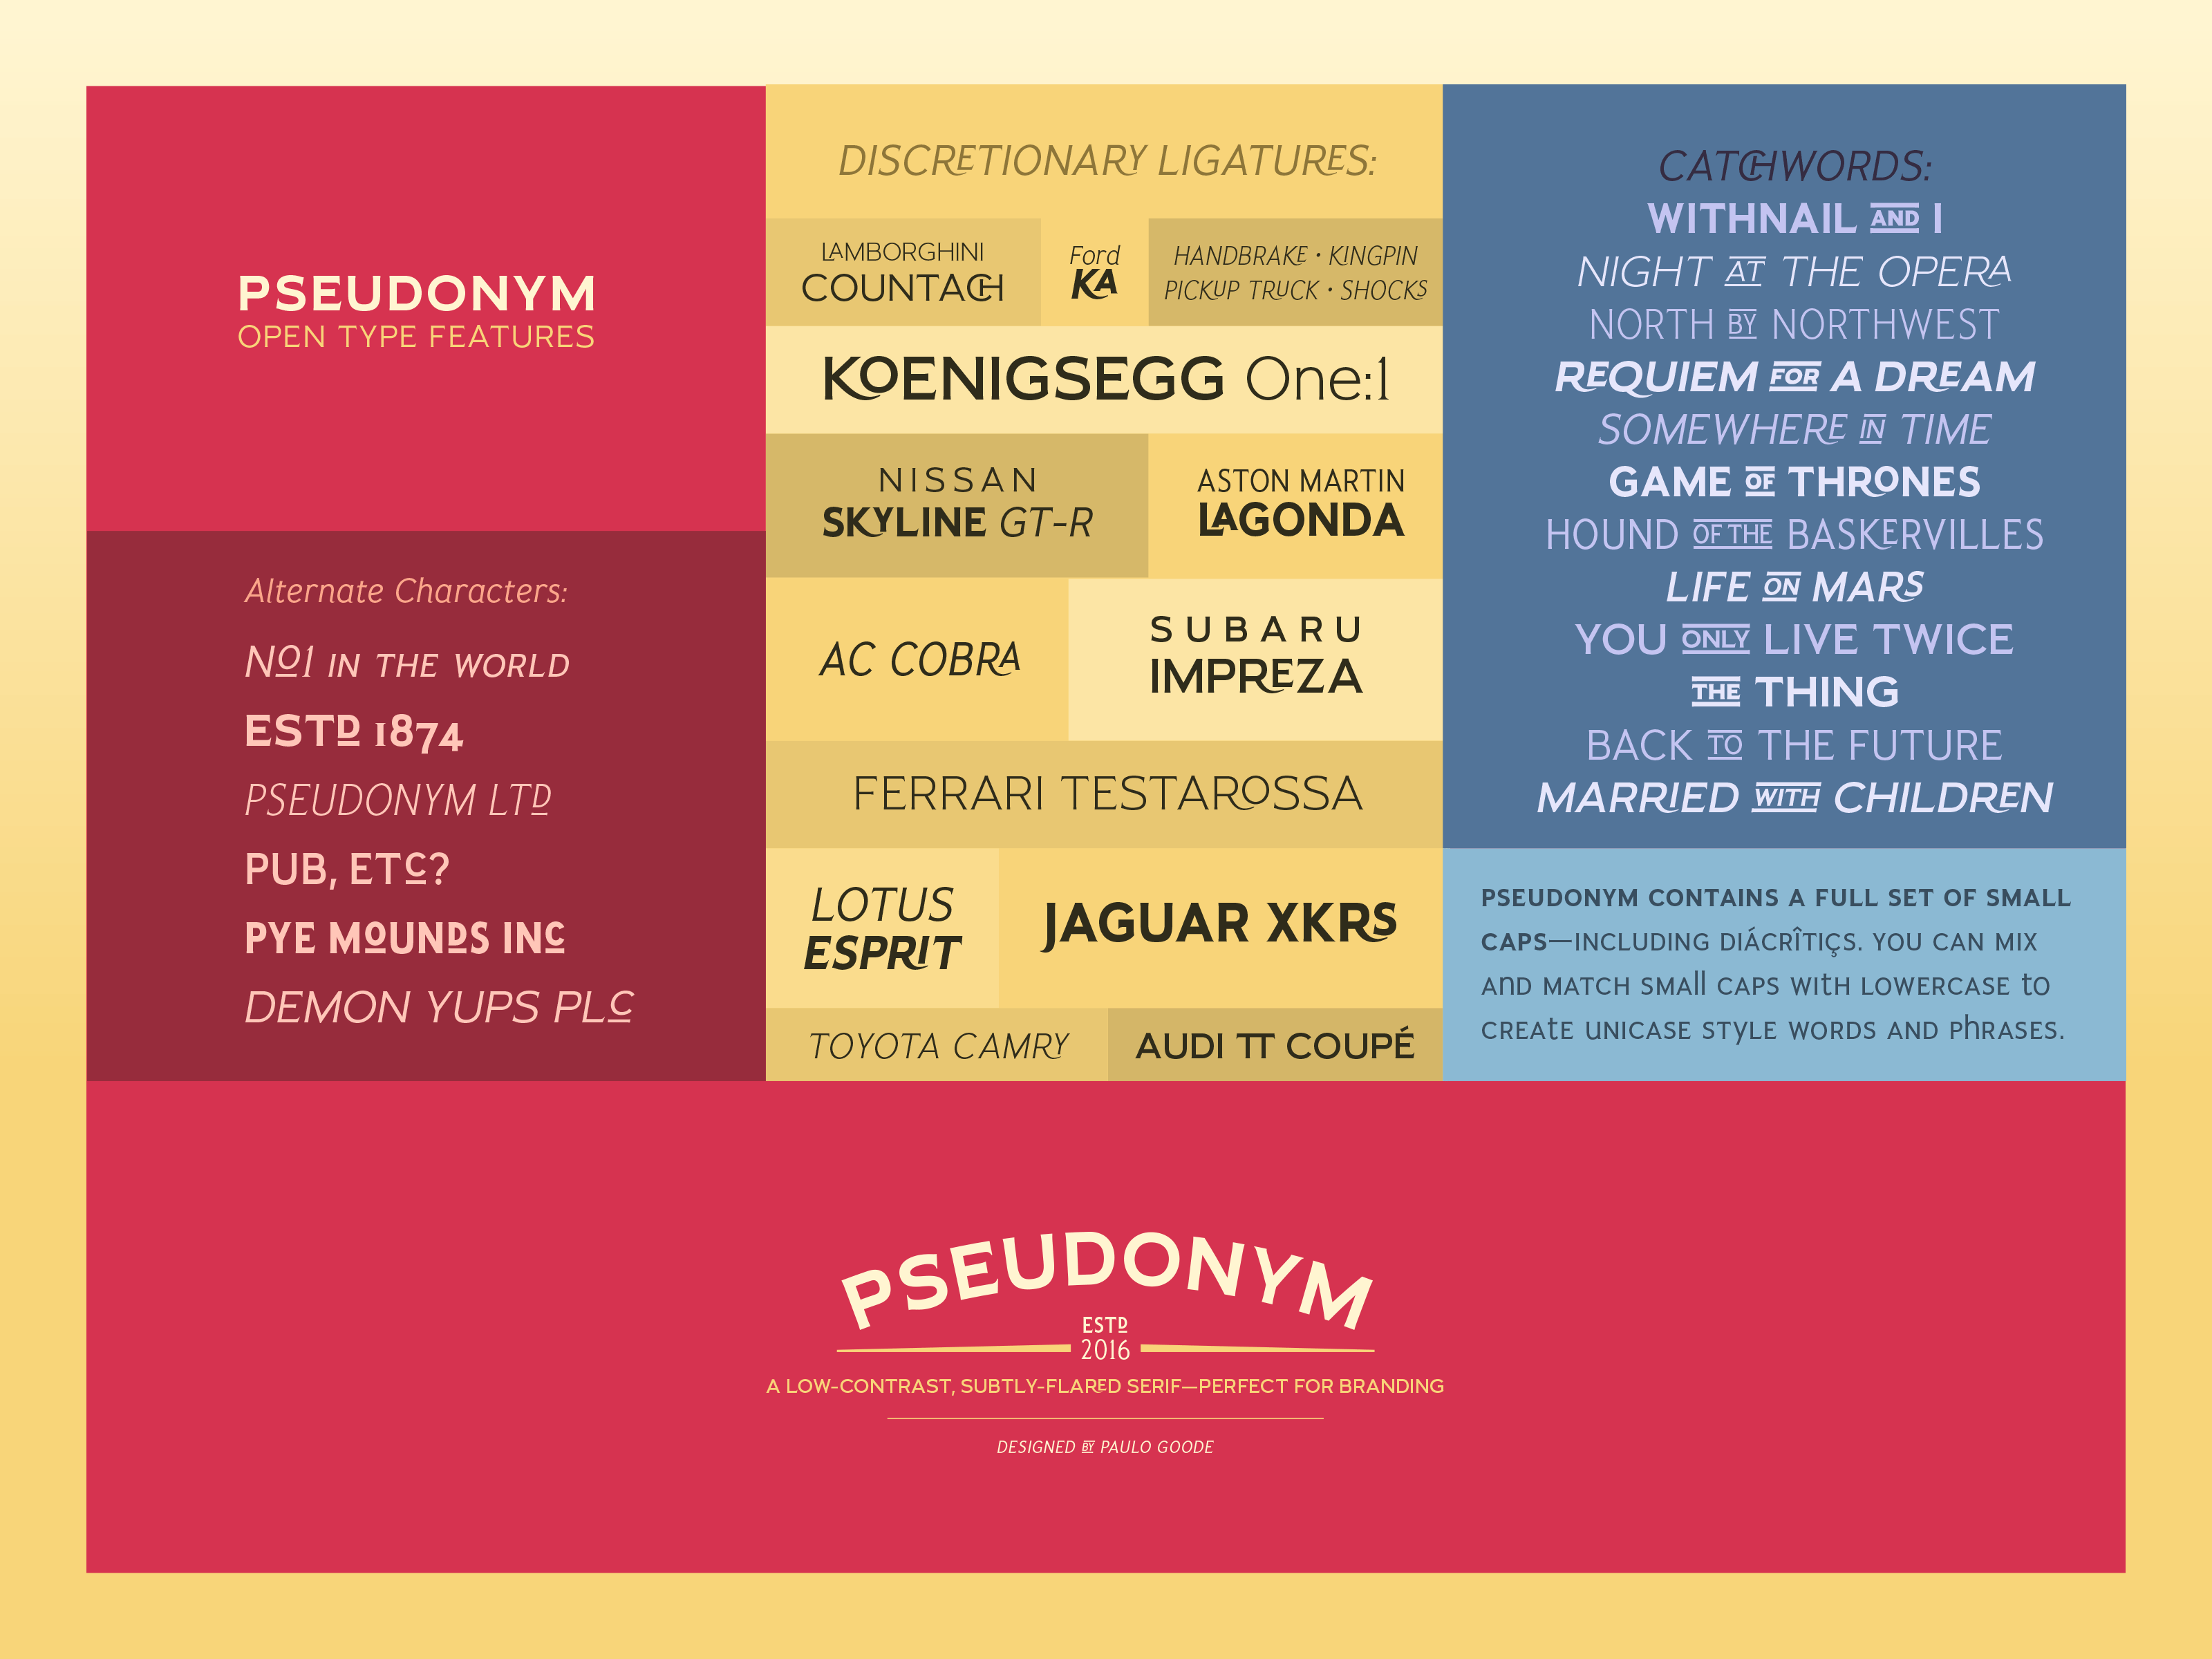 PSEUDONYM-font-sample-5-1600x1200@2x - Pseudonym PNG